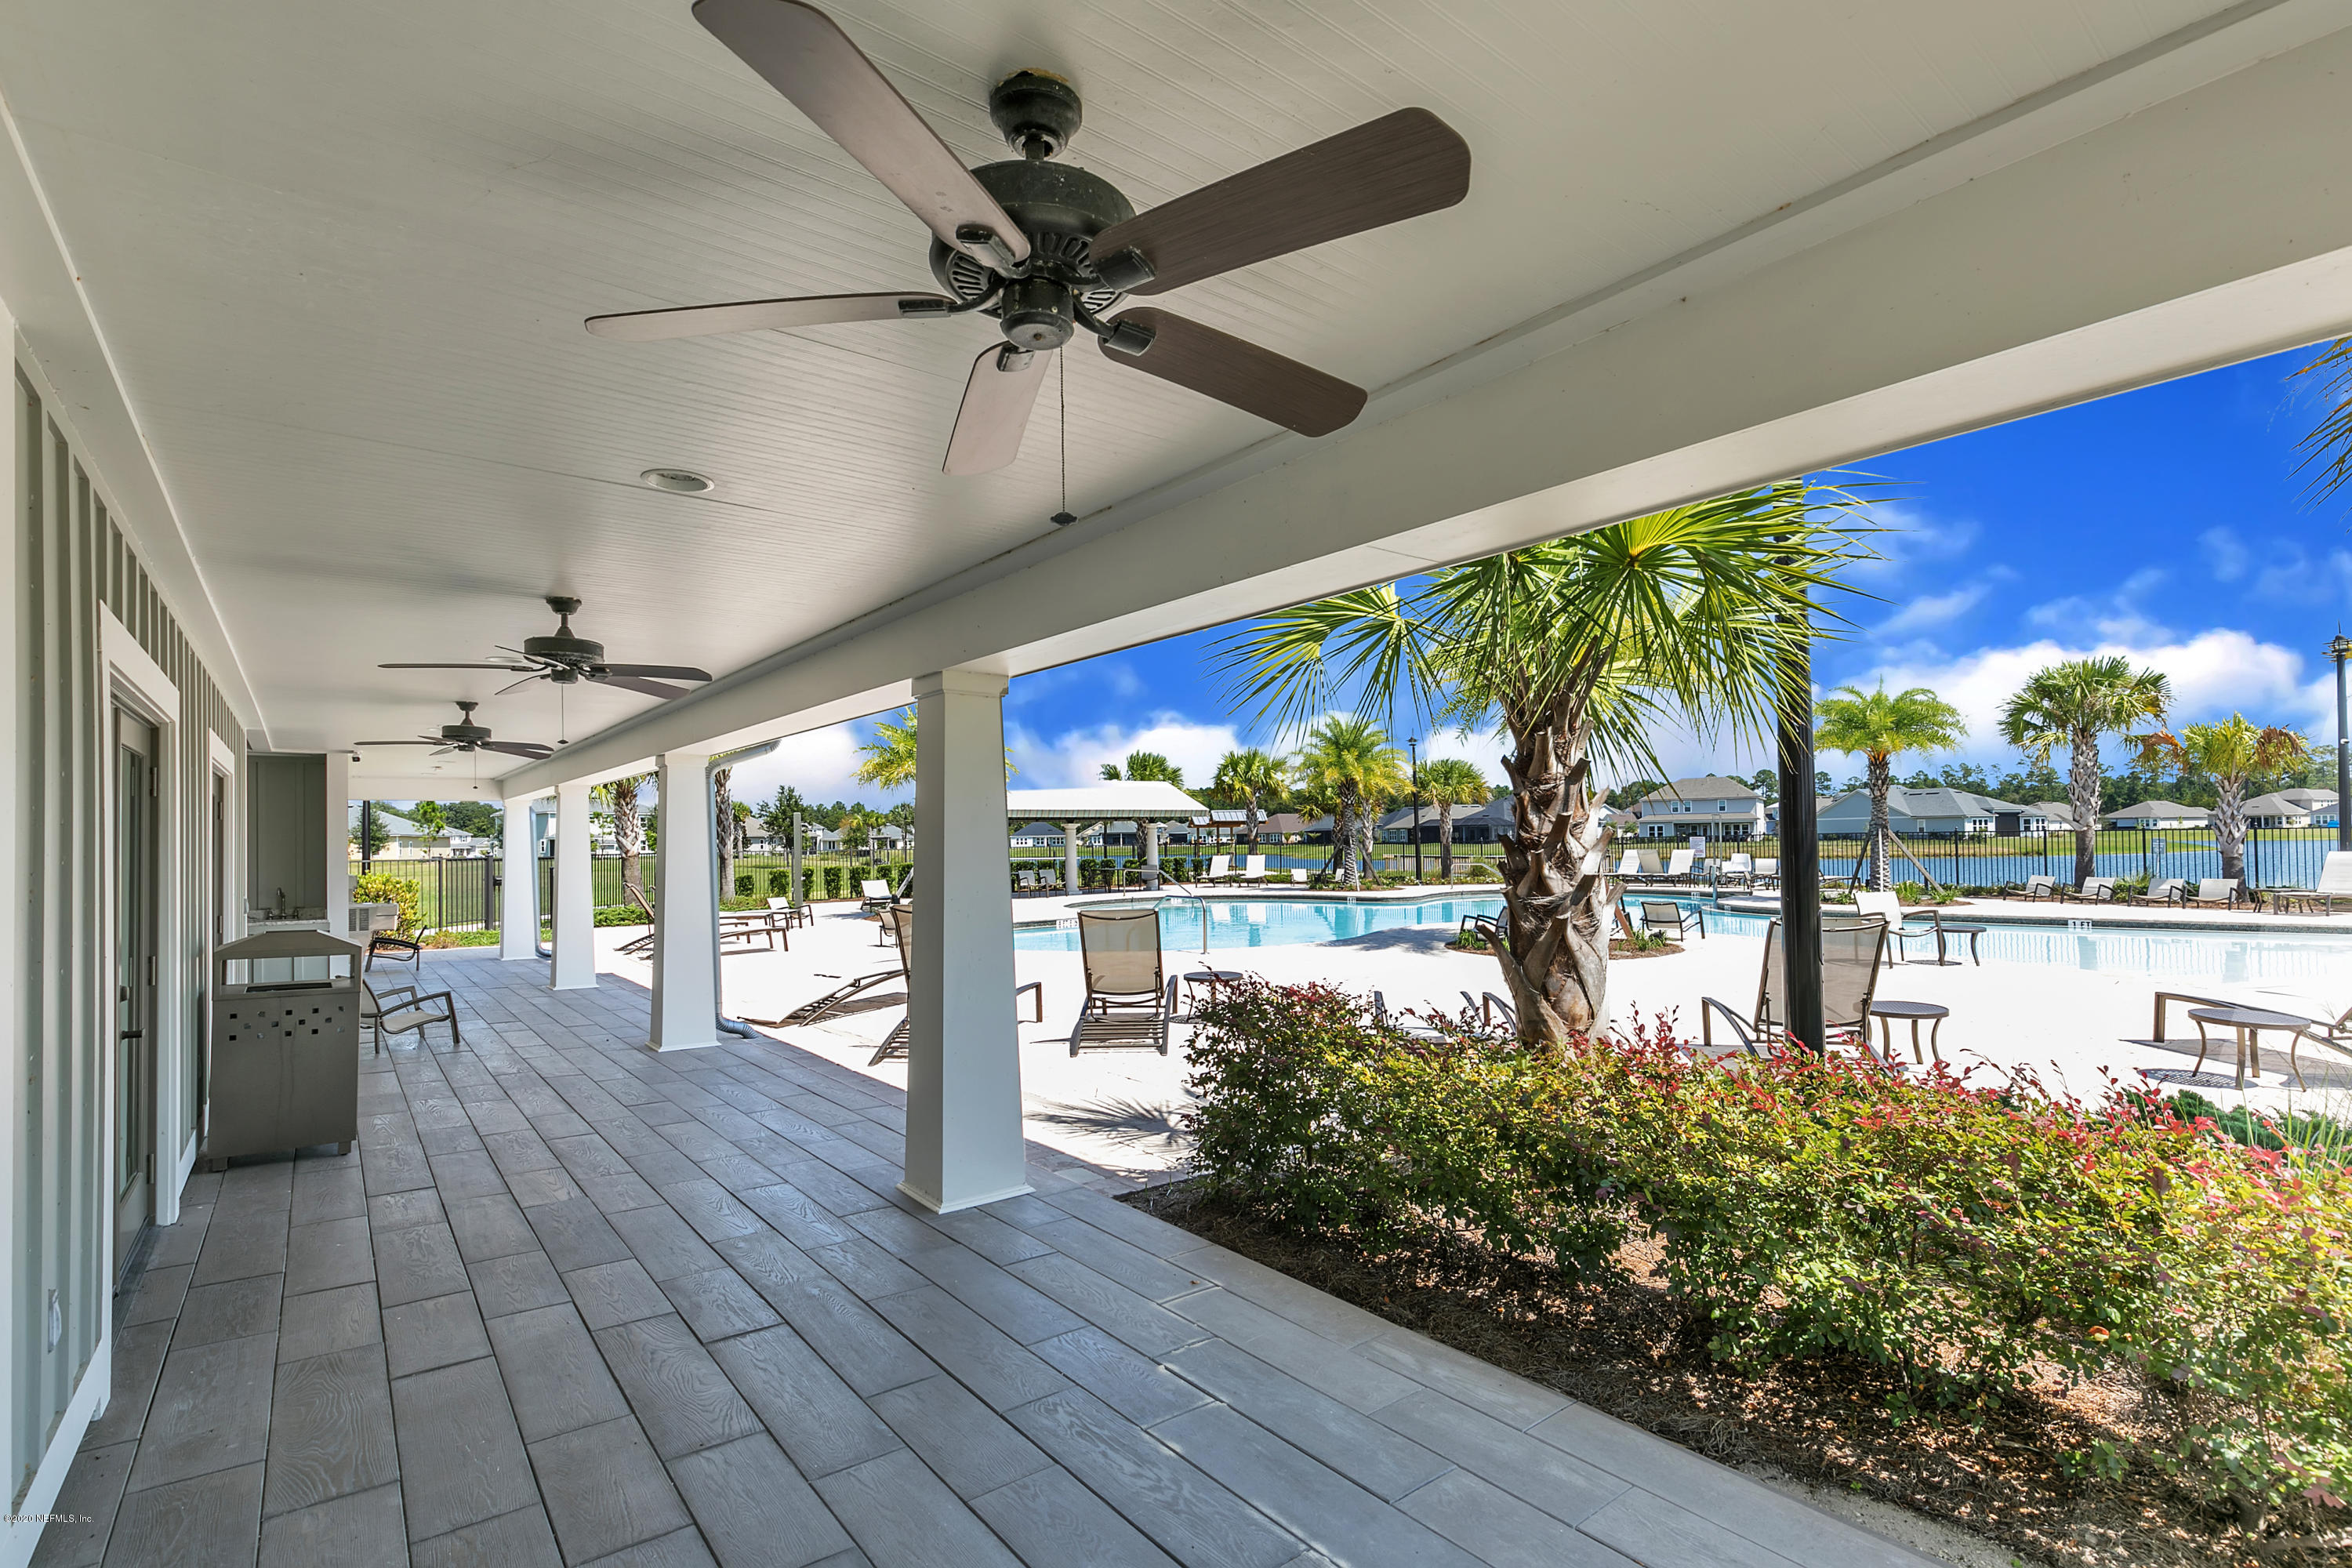 400 WILLOW LAKE, ST AUGUSTINE, FLORIDA 32092, 4 Bedrooms Bedrooms, ,3 BathroomsBathrooms,Residential,For sale,WILLOW LAKE,1059061